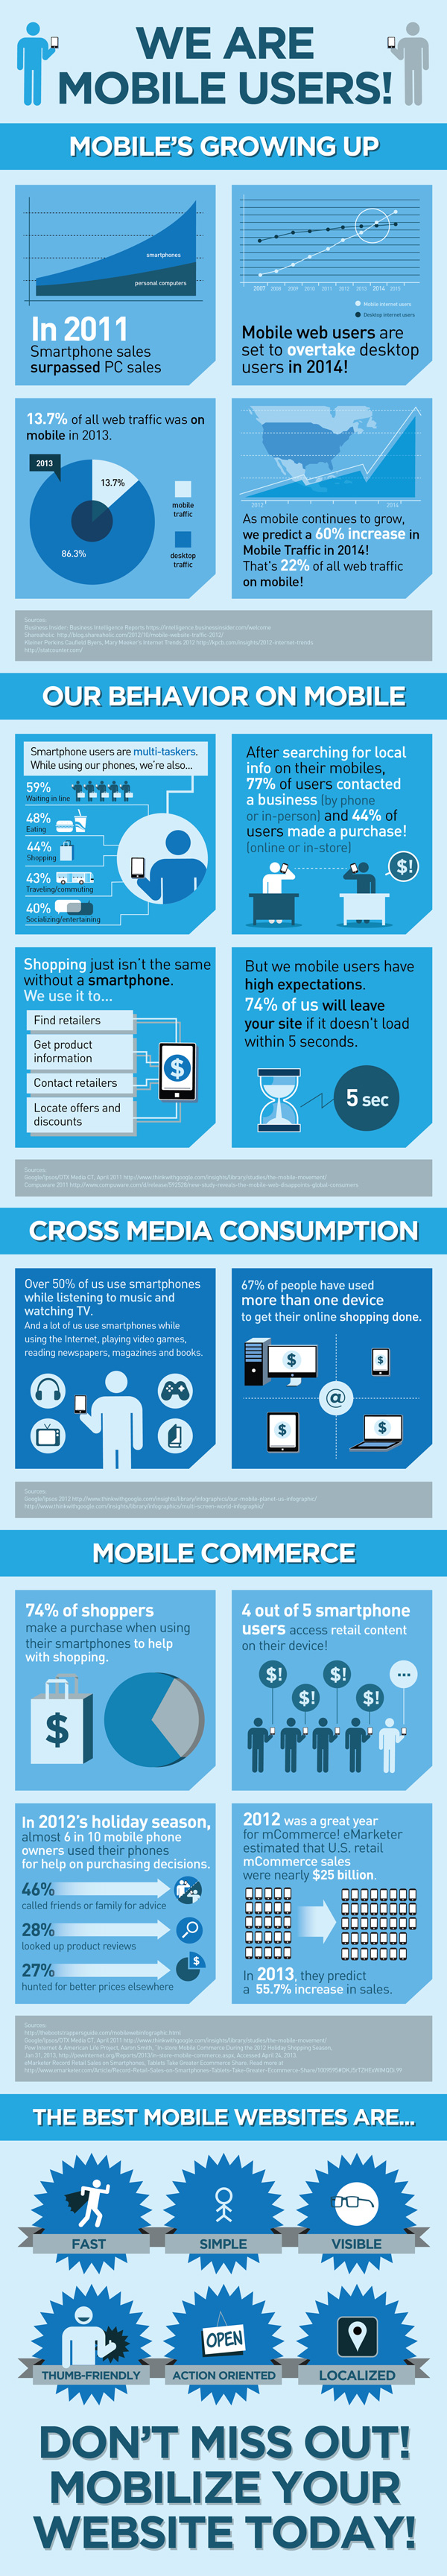 Mobile Web Rationale Infographic